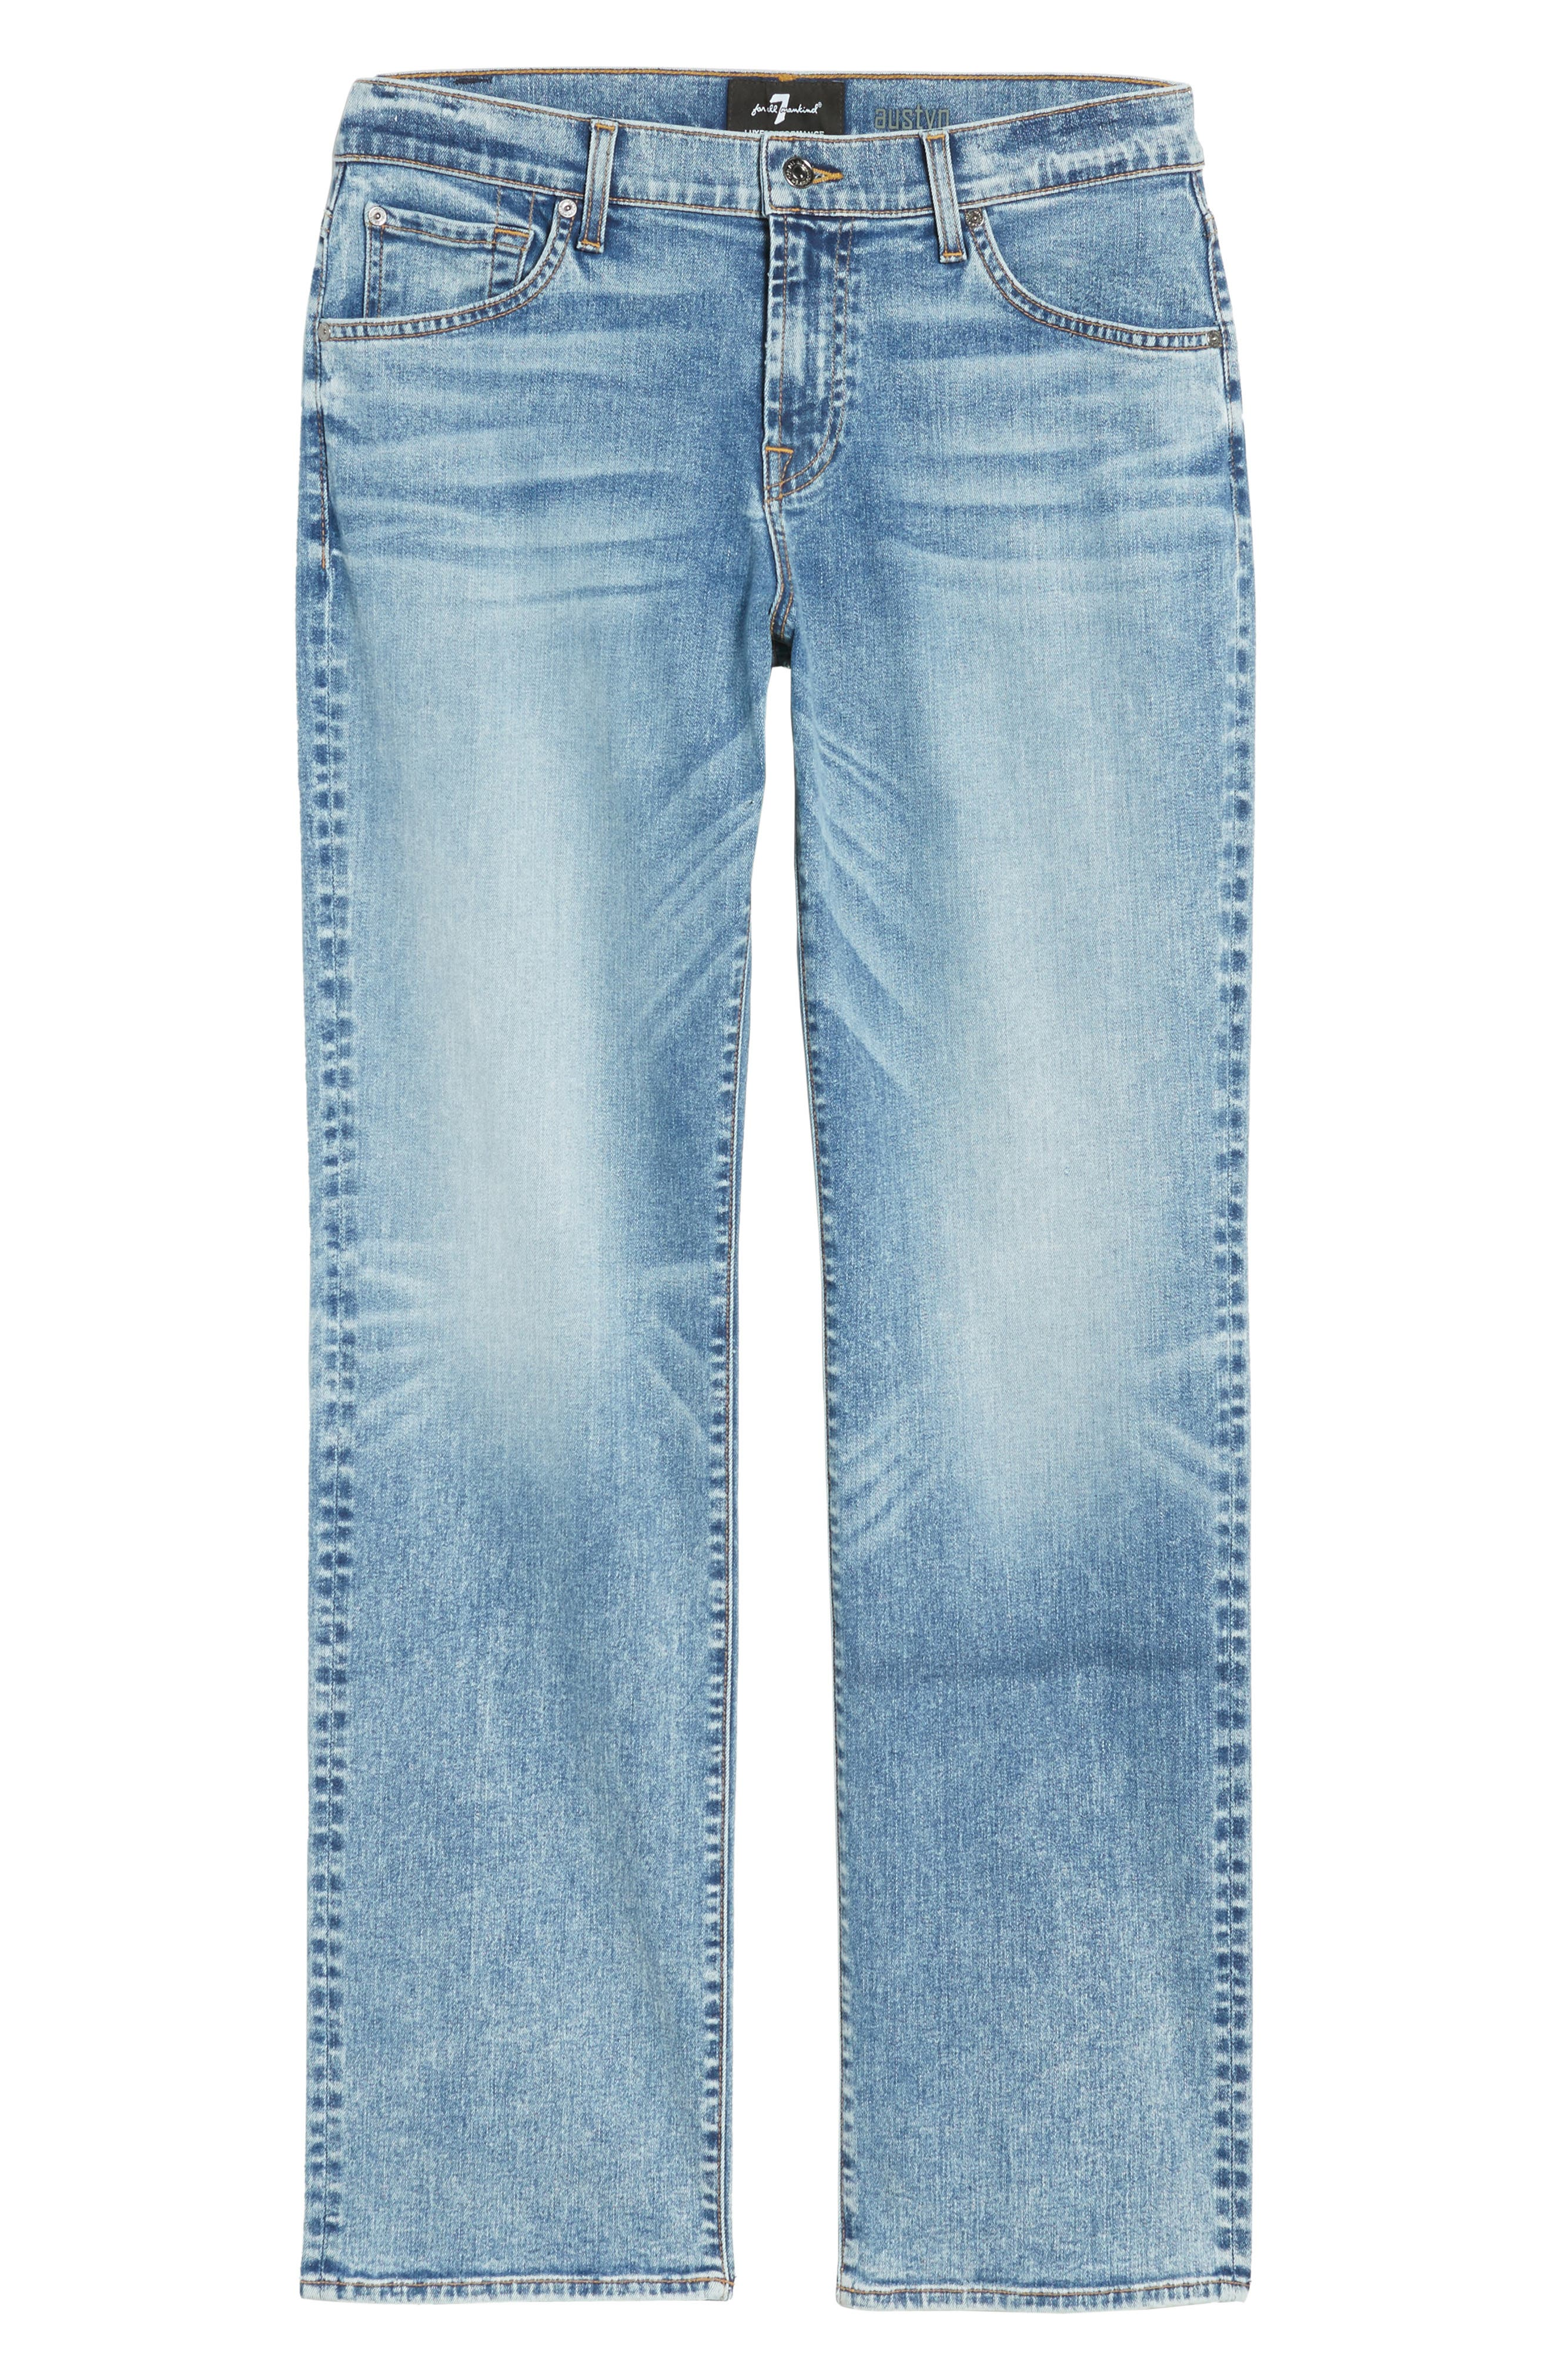 Austyn - Luxe Performance Relaxed Fit Jeans,                             Alternate thumbnail 6, color,                             404